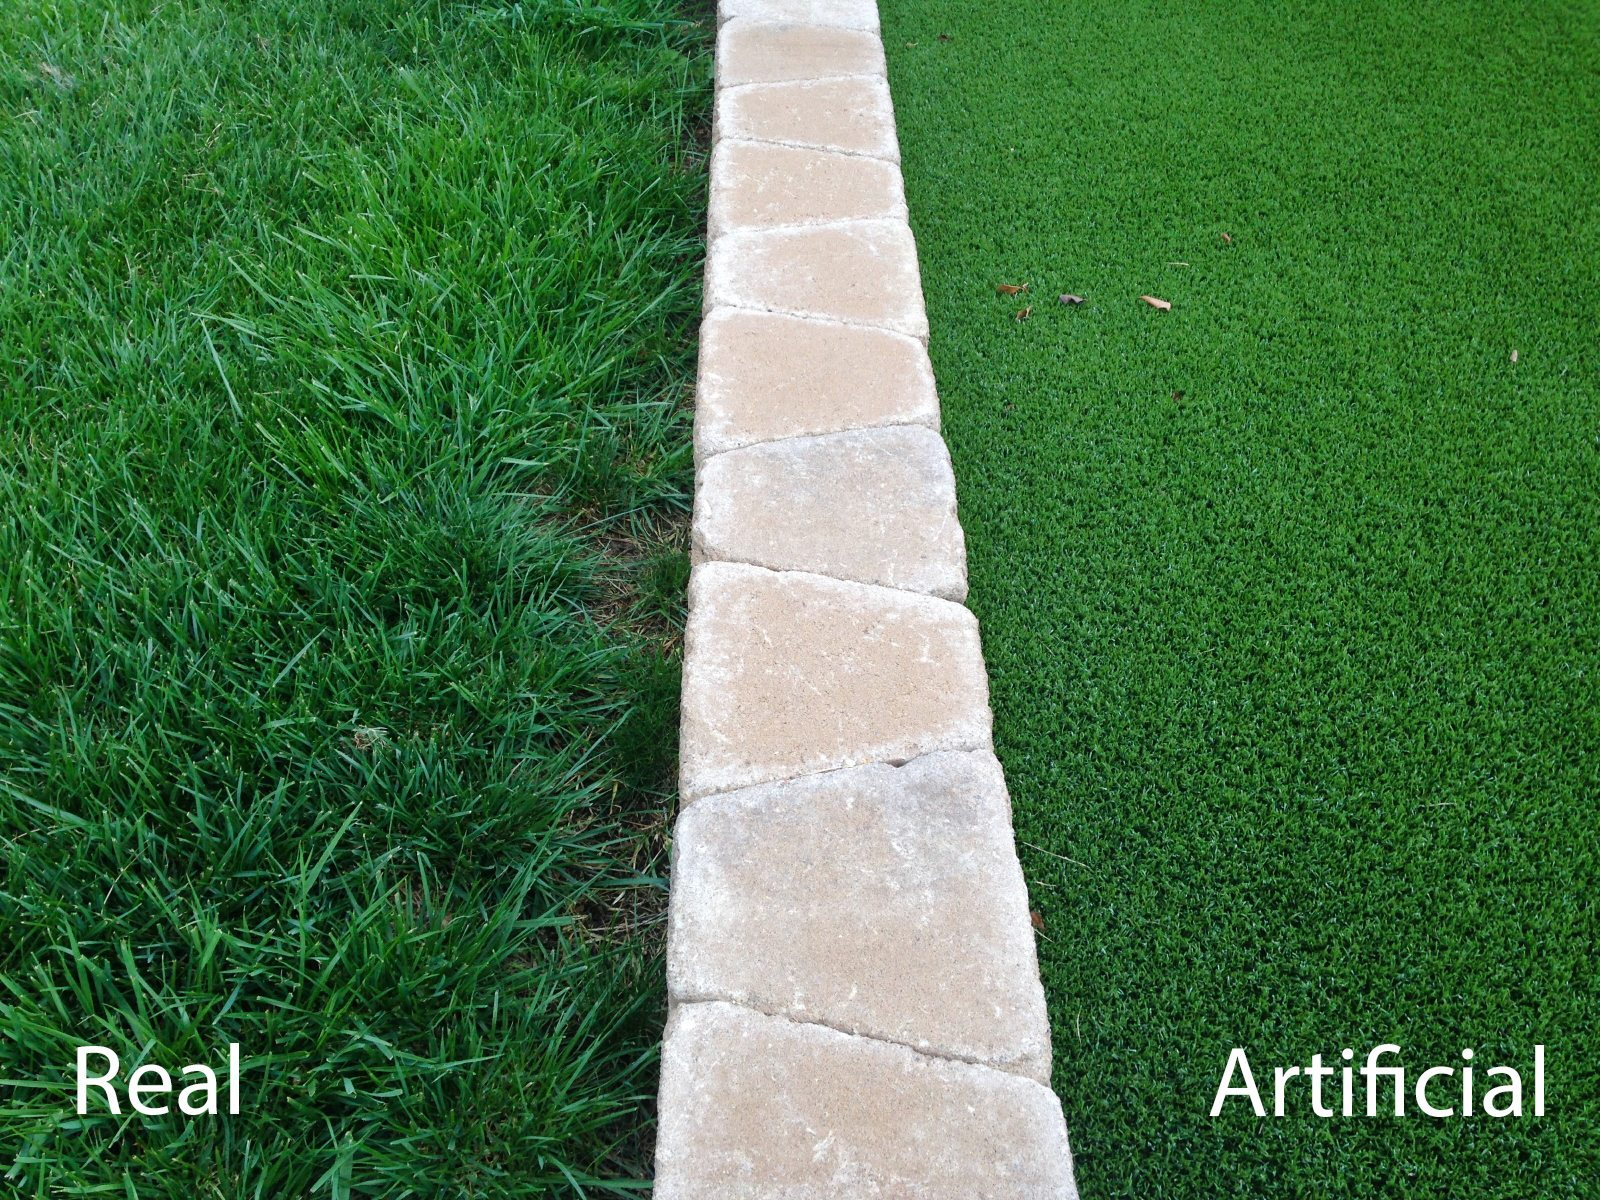 Fake Grass Yards :  Is An Artificial Lawn ? Learn About Using Artificial Grass For Yards